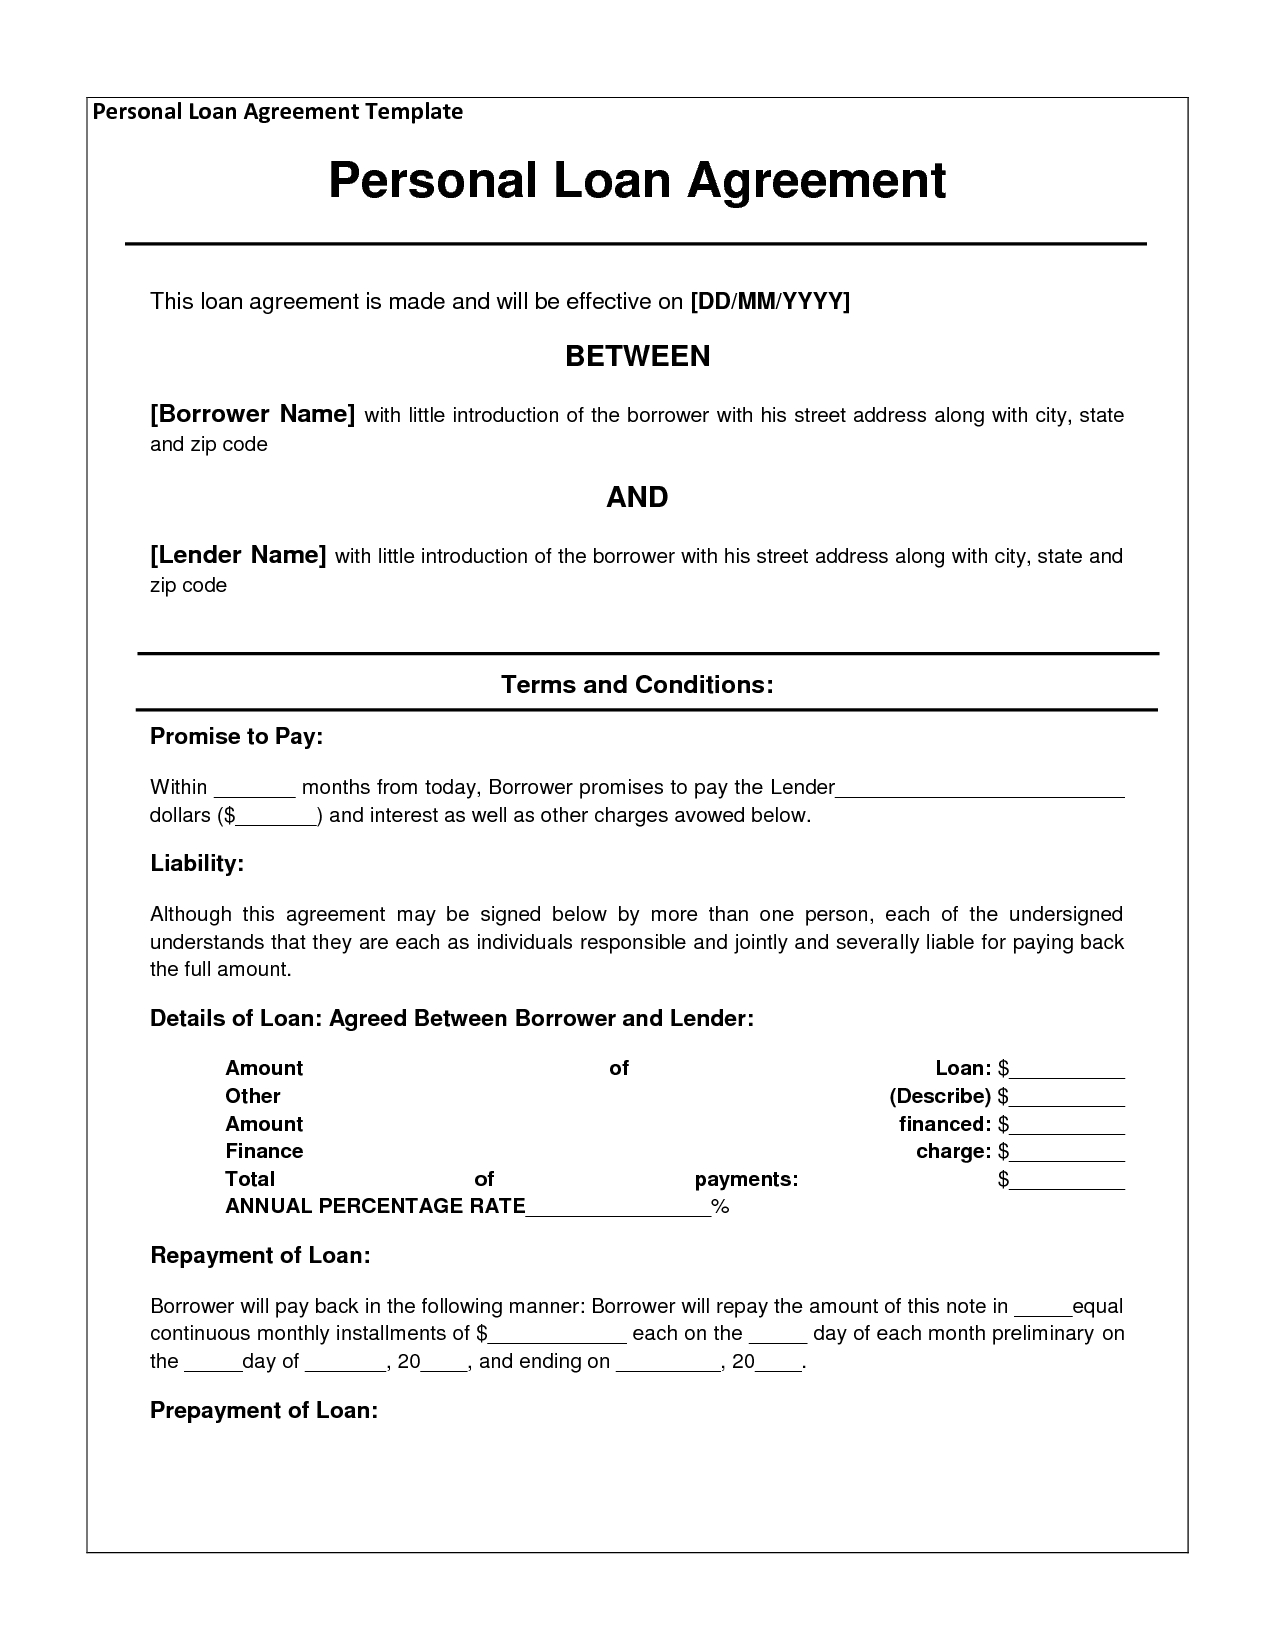 Personal Loan Repayment Letter Template - Free Personal Loan Agreement form Template $1000 Approved In 2